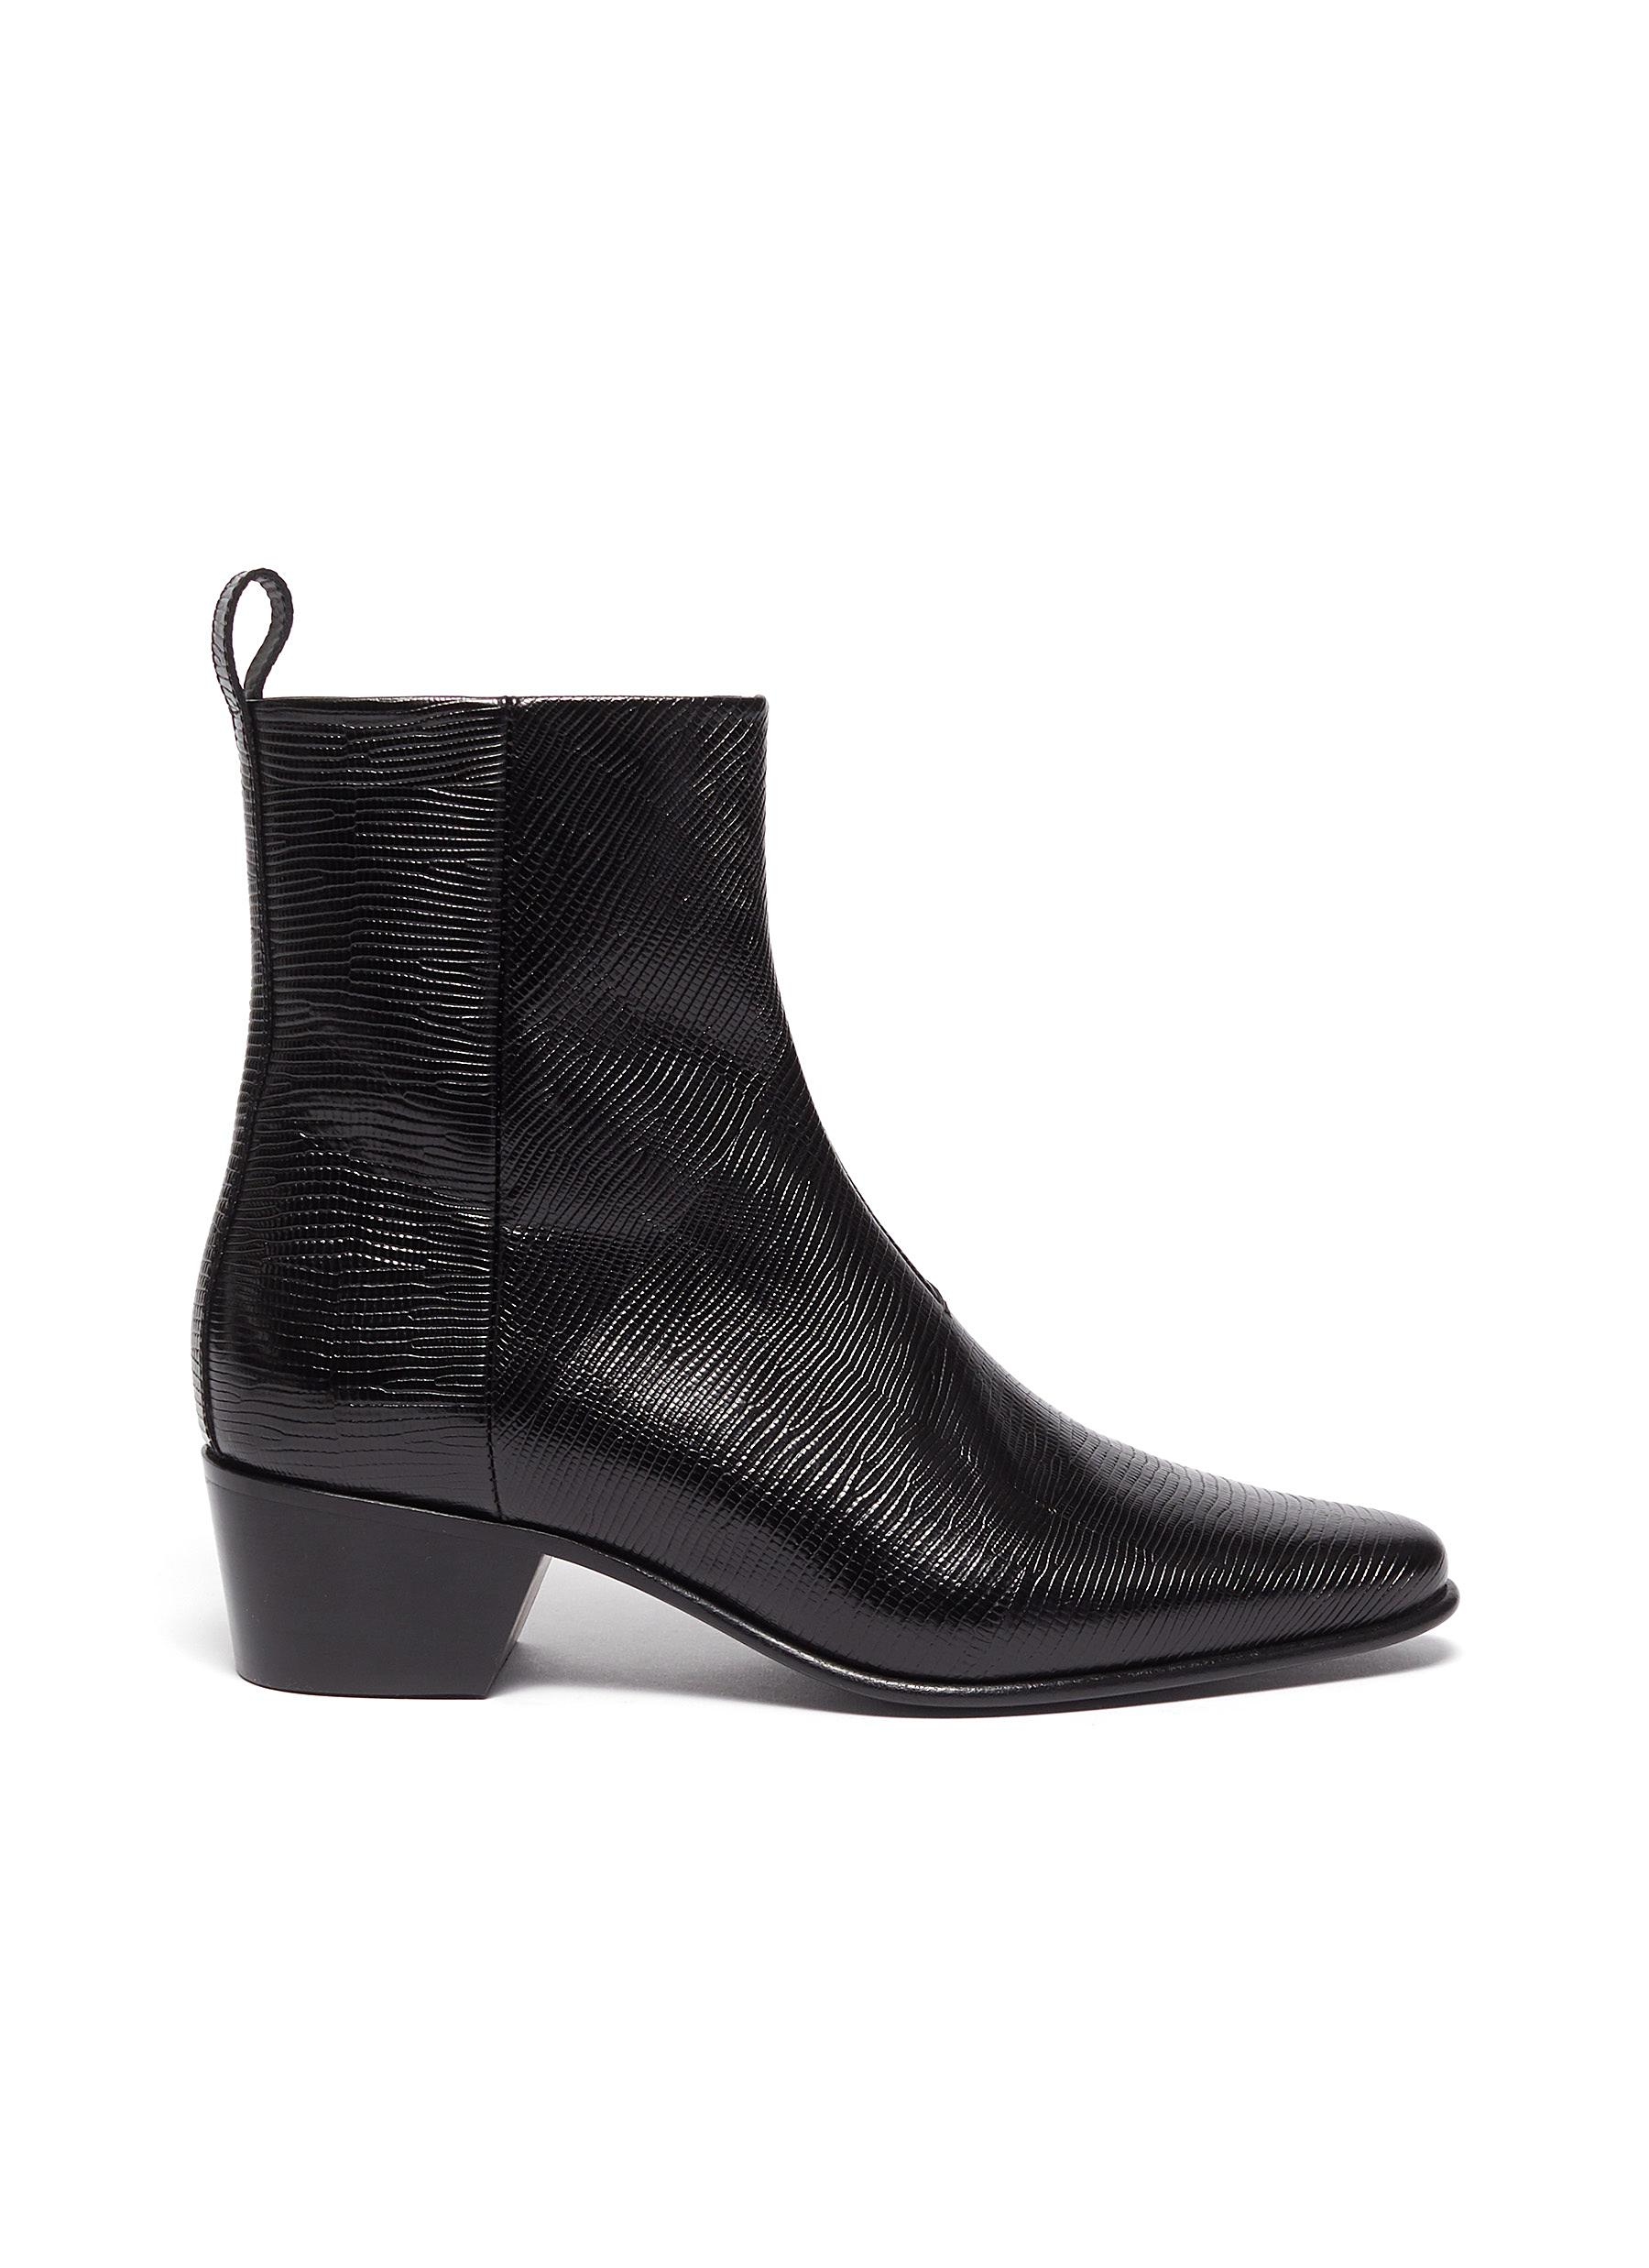 Pierre Hardy Boots Reno calfskin leather ankle boots